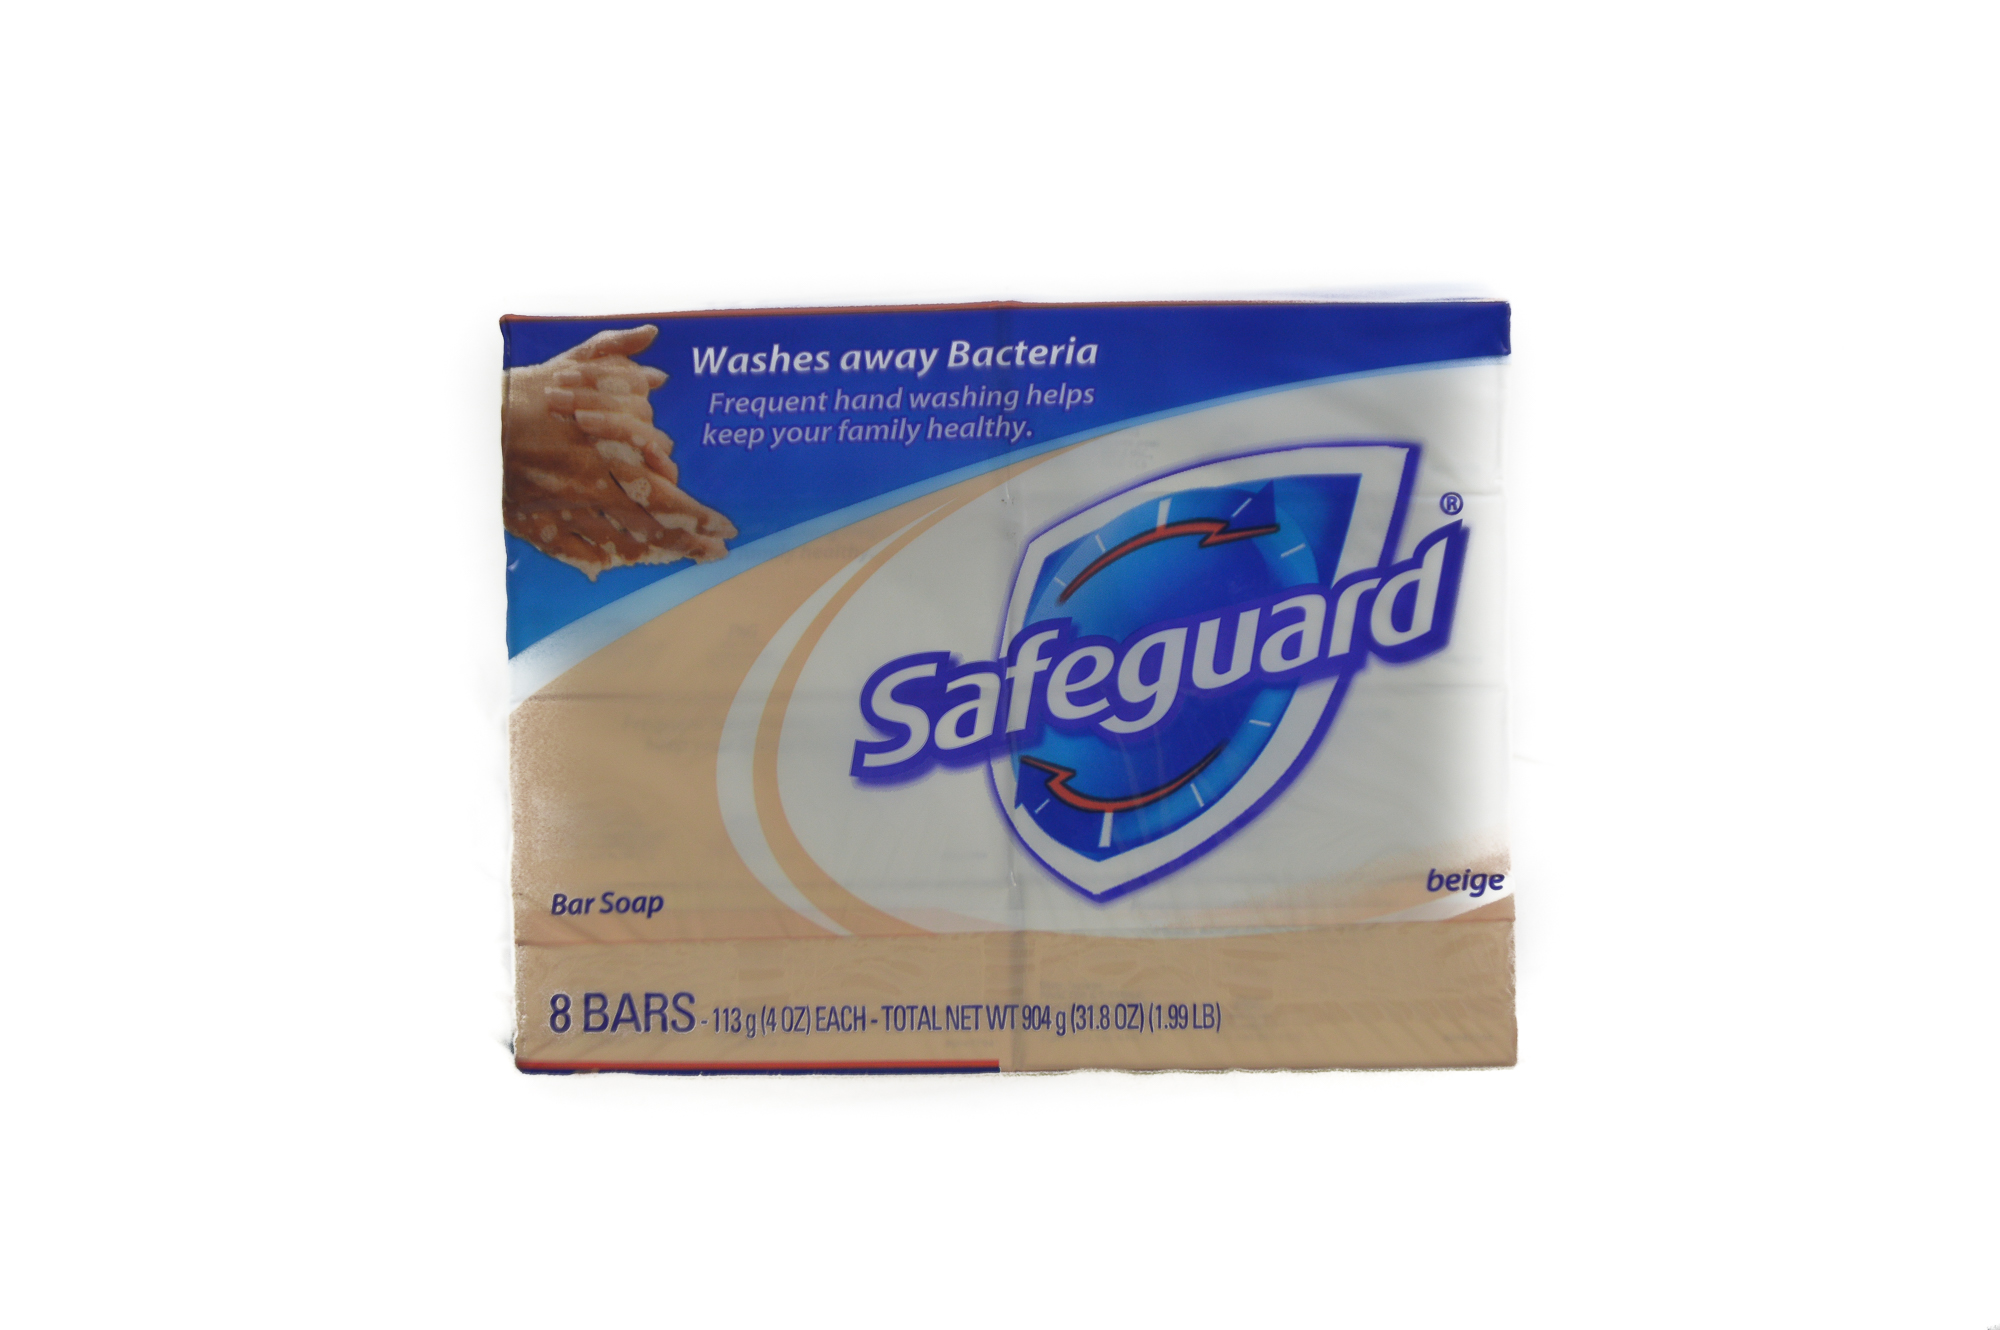 Safeguard Soap Pack (8 bars x 4.1 Oz)